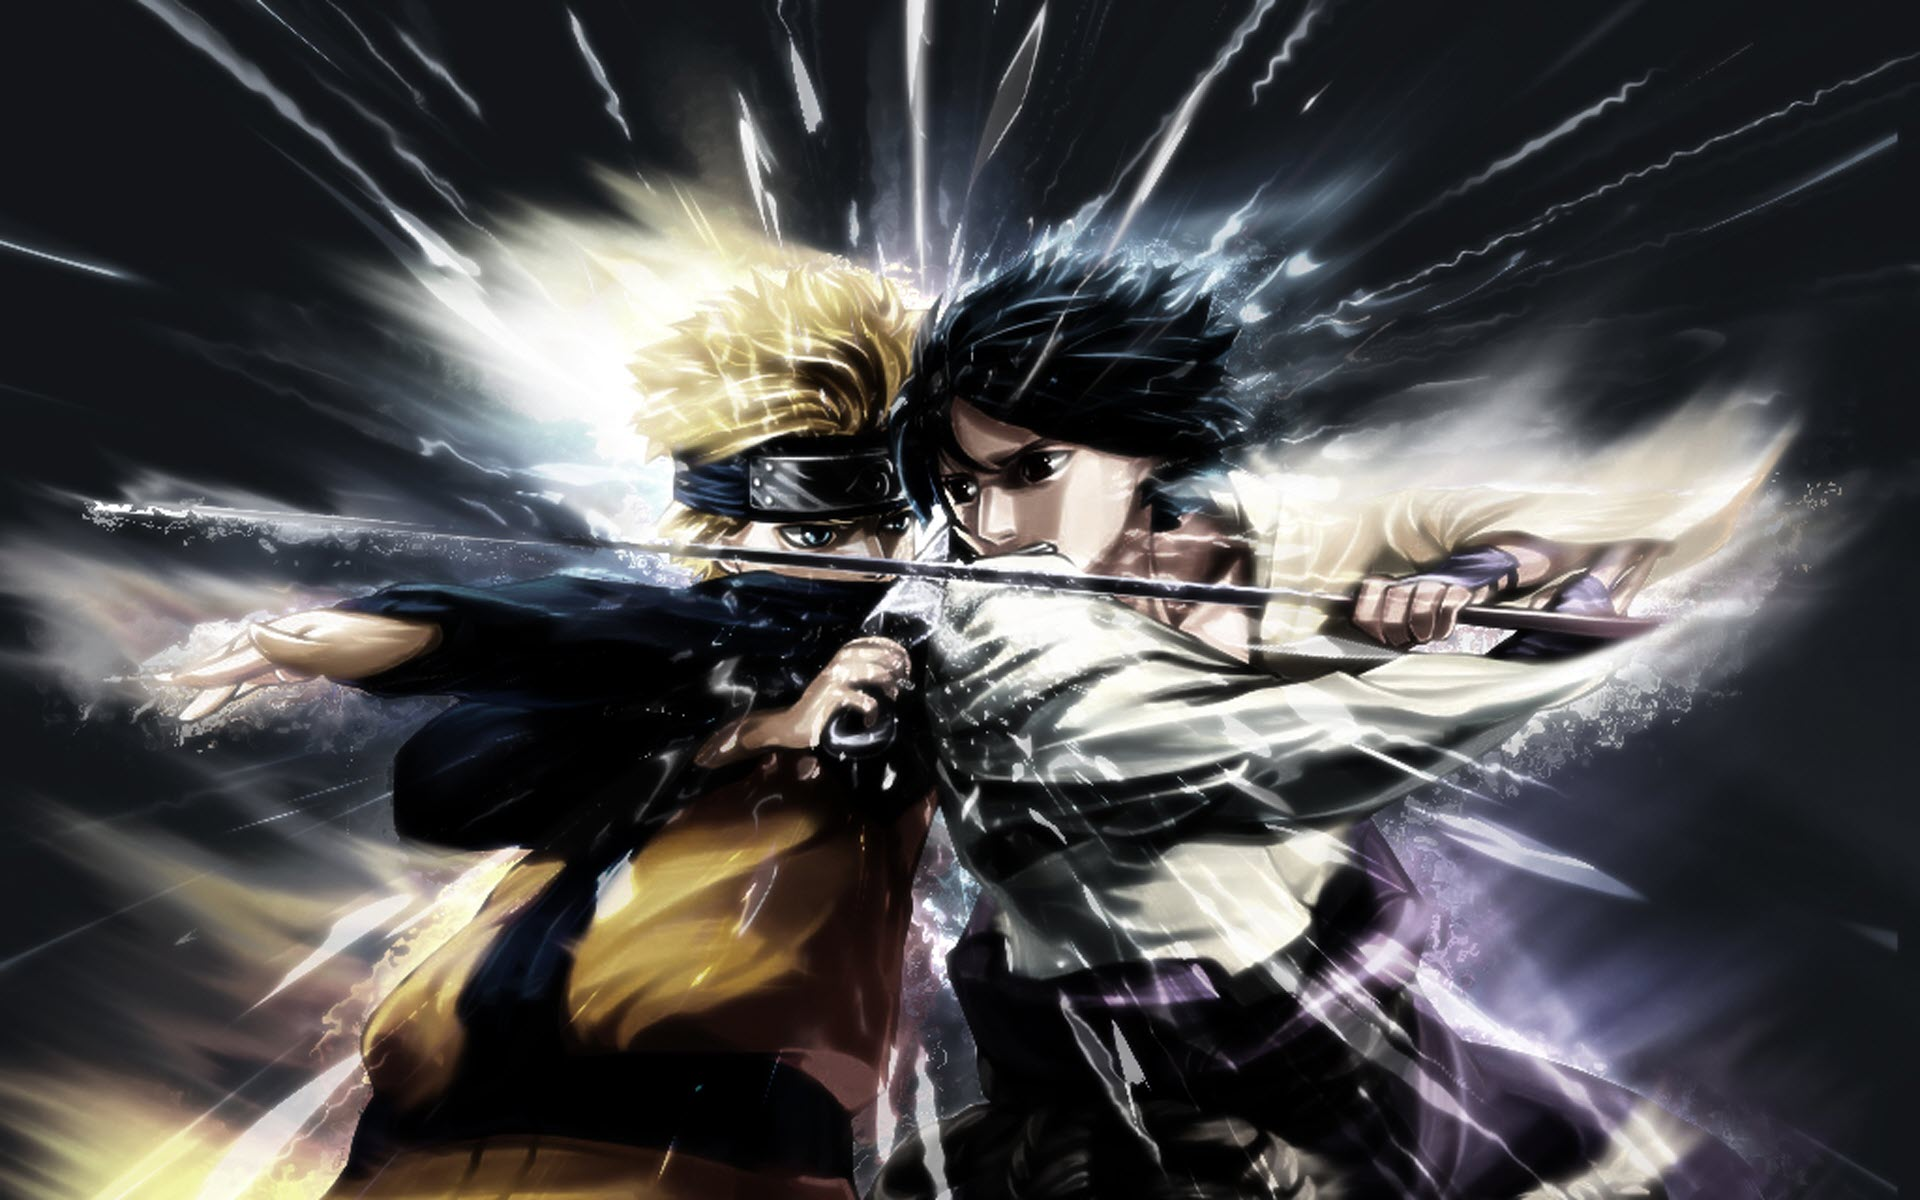 naruto vs sasuke fighting hd desktop wallpaper : widescreen 1920x1200